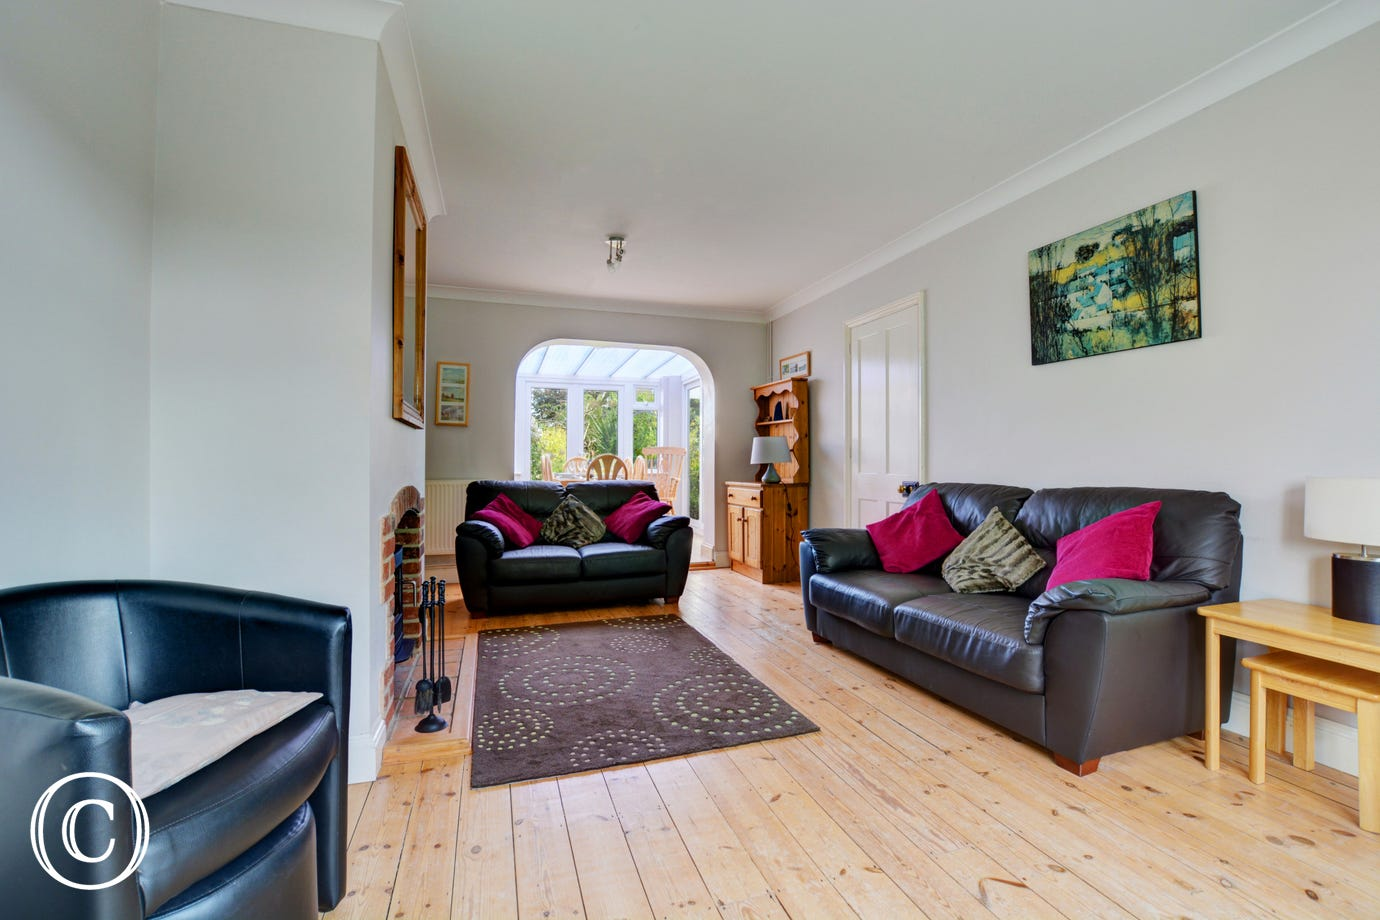 Comfortable sofas and a woodburner makes this a lovely cosy sitting room